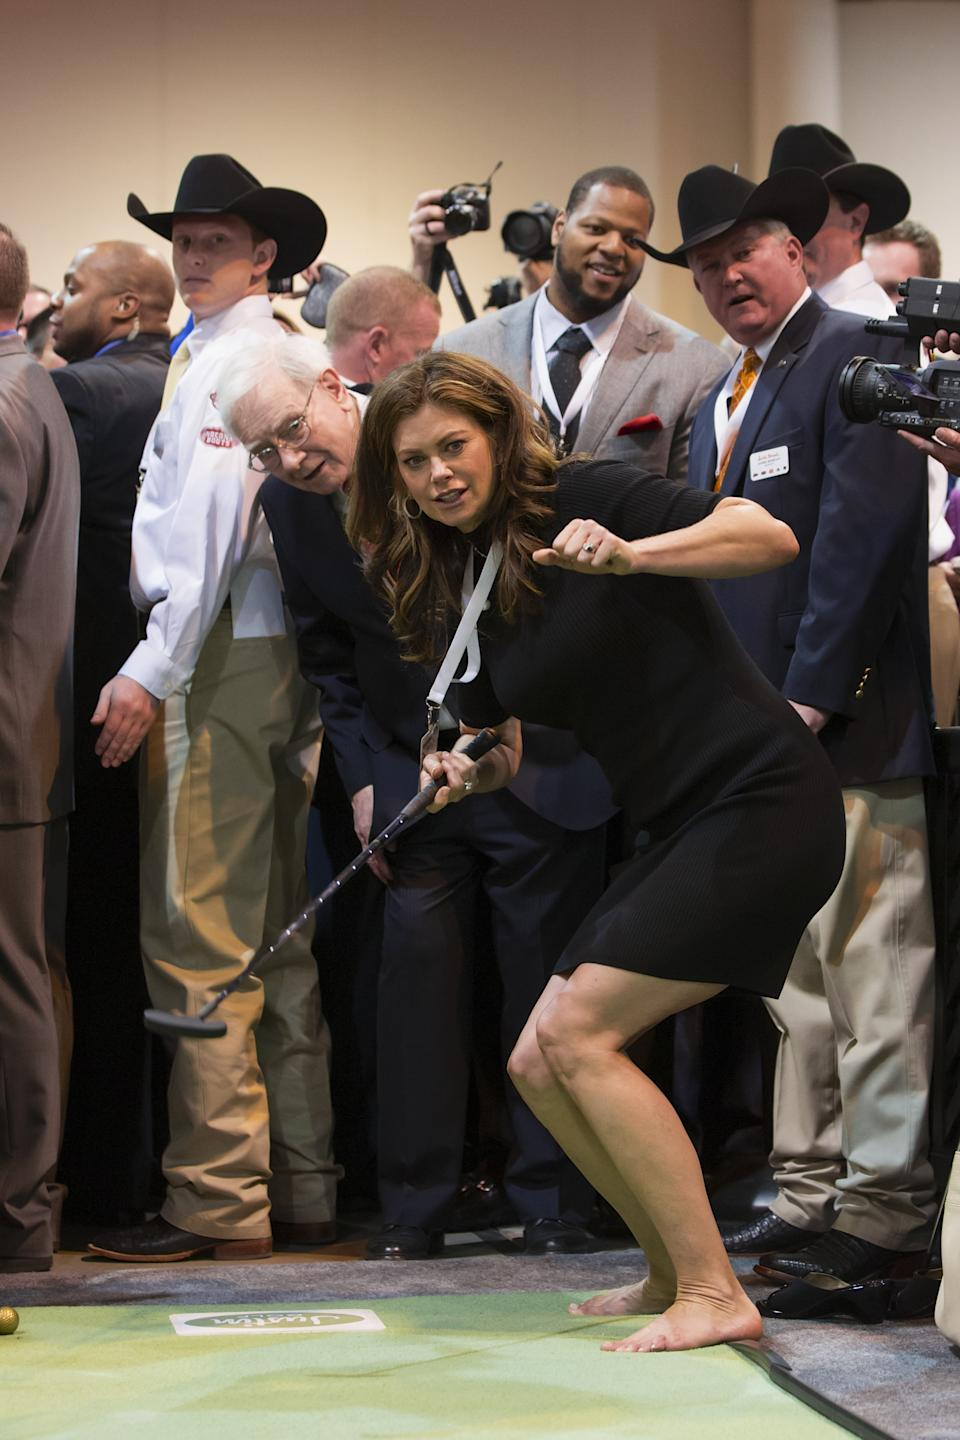 Former model and current businesswoman Kathy Ireland follows the path of her putt with Warren Buffett behind her, at the Justin Boots indoor mini golf lane in Omaha, Neb., Saturday, May 4, 2013, at the annual Berkshire Hathaway shareholder meeting. (AP Photo/Nati Harnik)